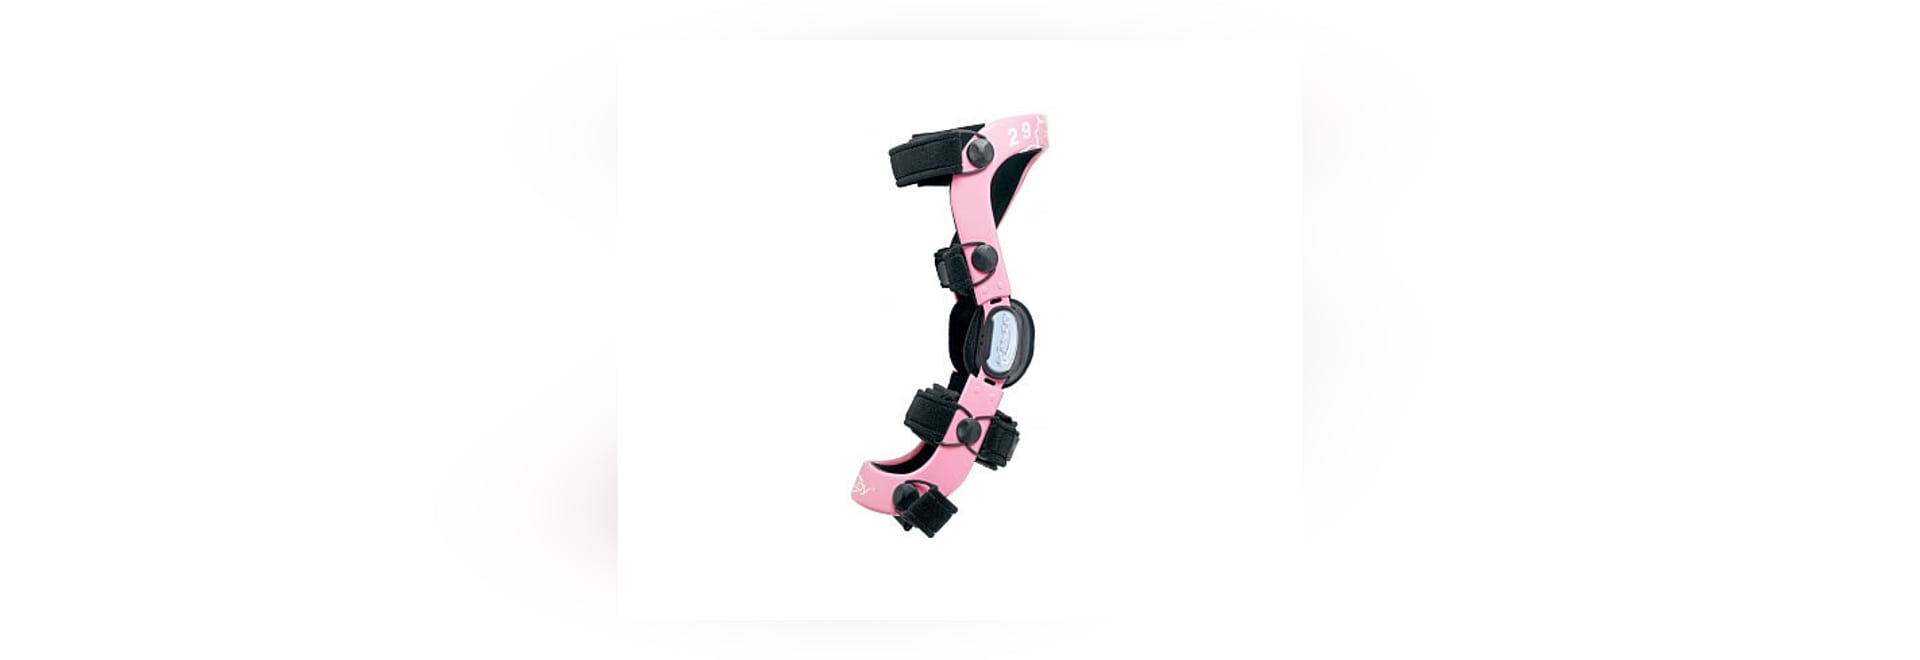 Defiance III® Female Fource™ - DonJoy's flagship custom knee ligament brace